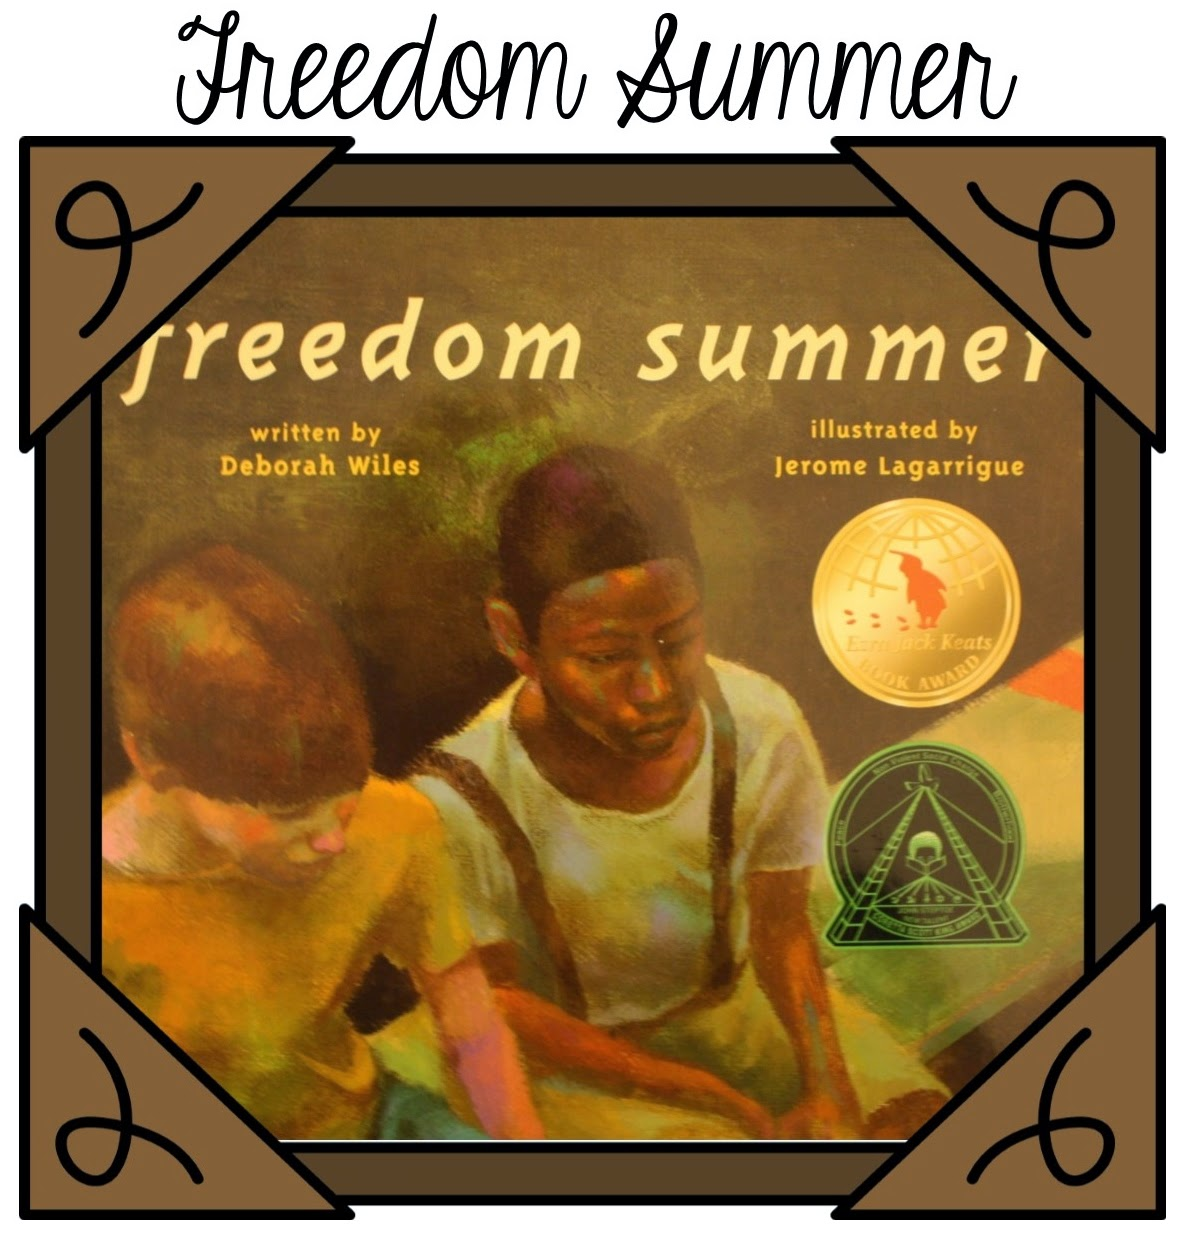 http://www.amazon.com/Freedom-Summer-Deborah-Wiles/dp/068987829X/ref=tmm_pap_swatch_0?_encoding=UTF8&sr=8-2&qid=1421621446